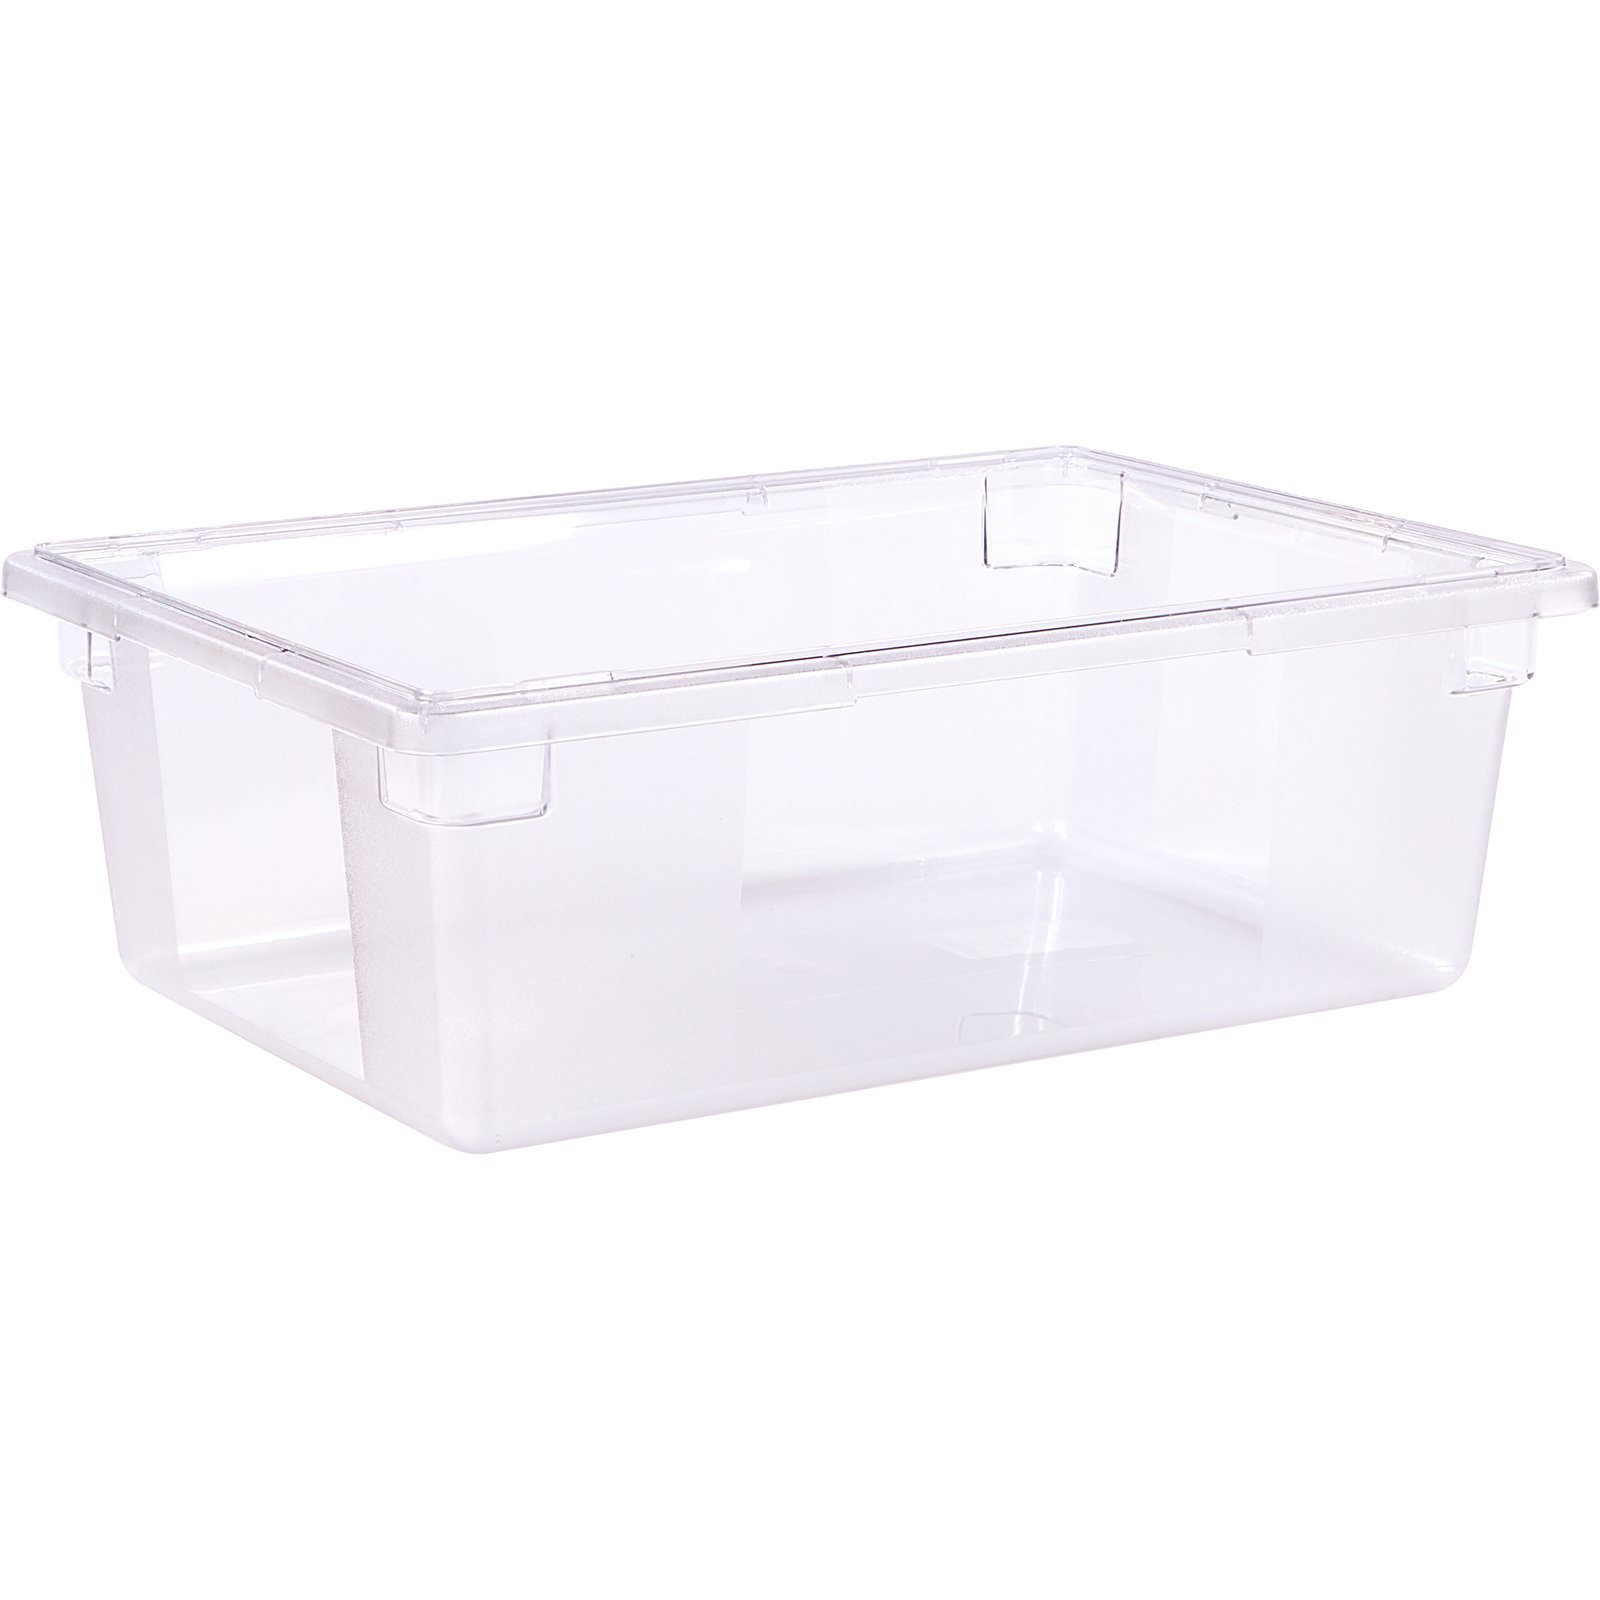 1062207 StorPlus Polycarbonate Food Box Storage Container 125